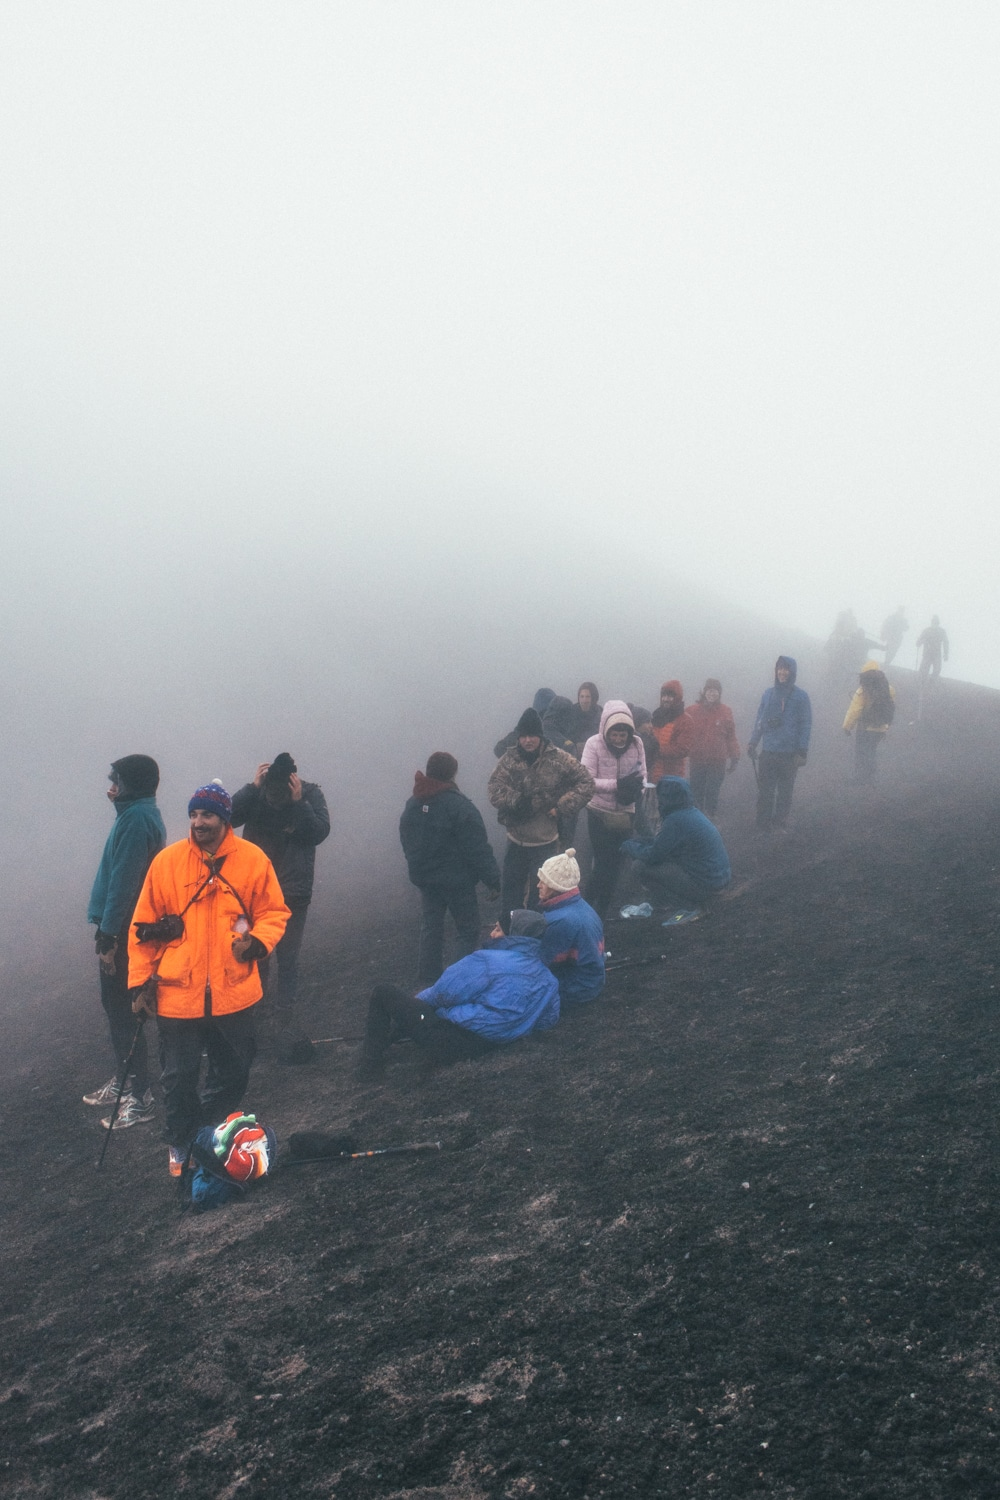 hikers at the summit of the Acatenango volcano